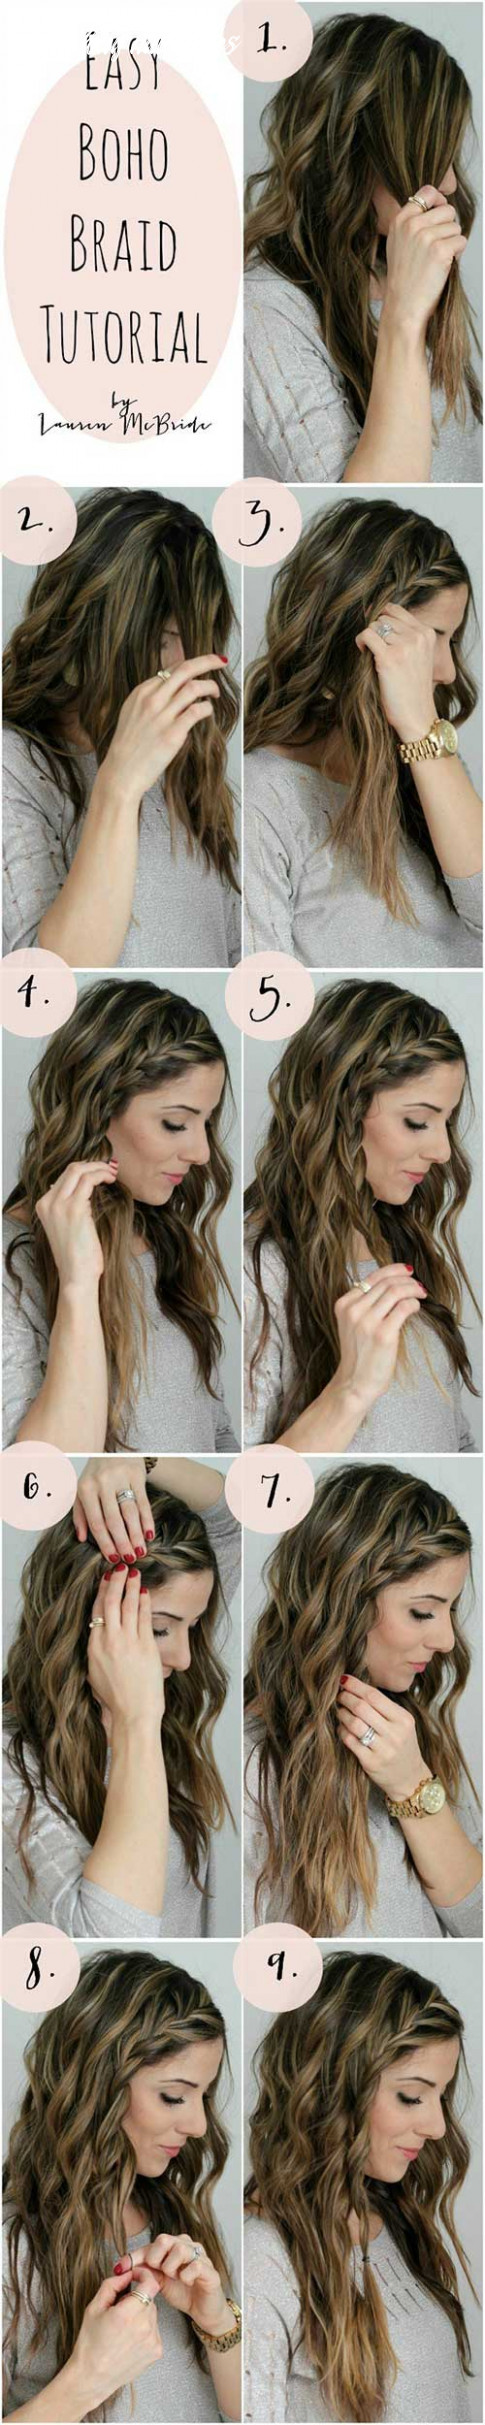 12 Awesome Hairstyles For Girls With Long Hair